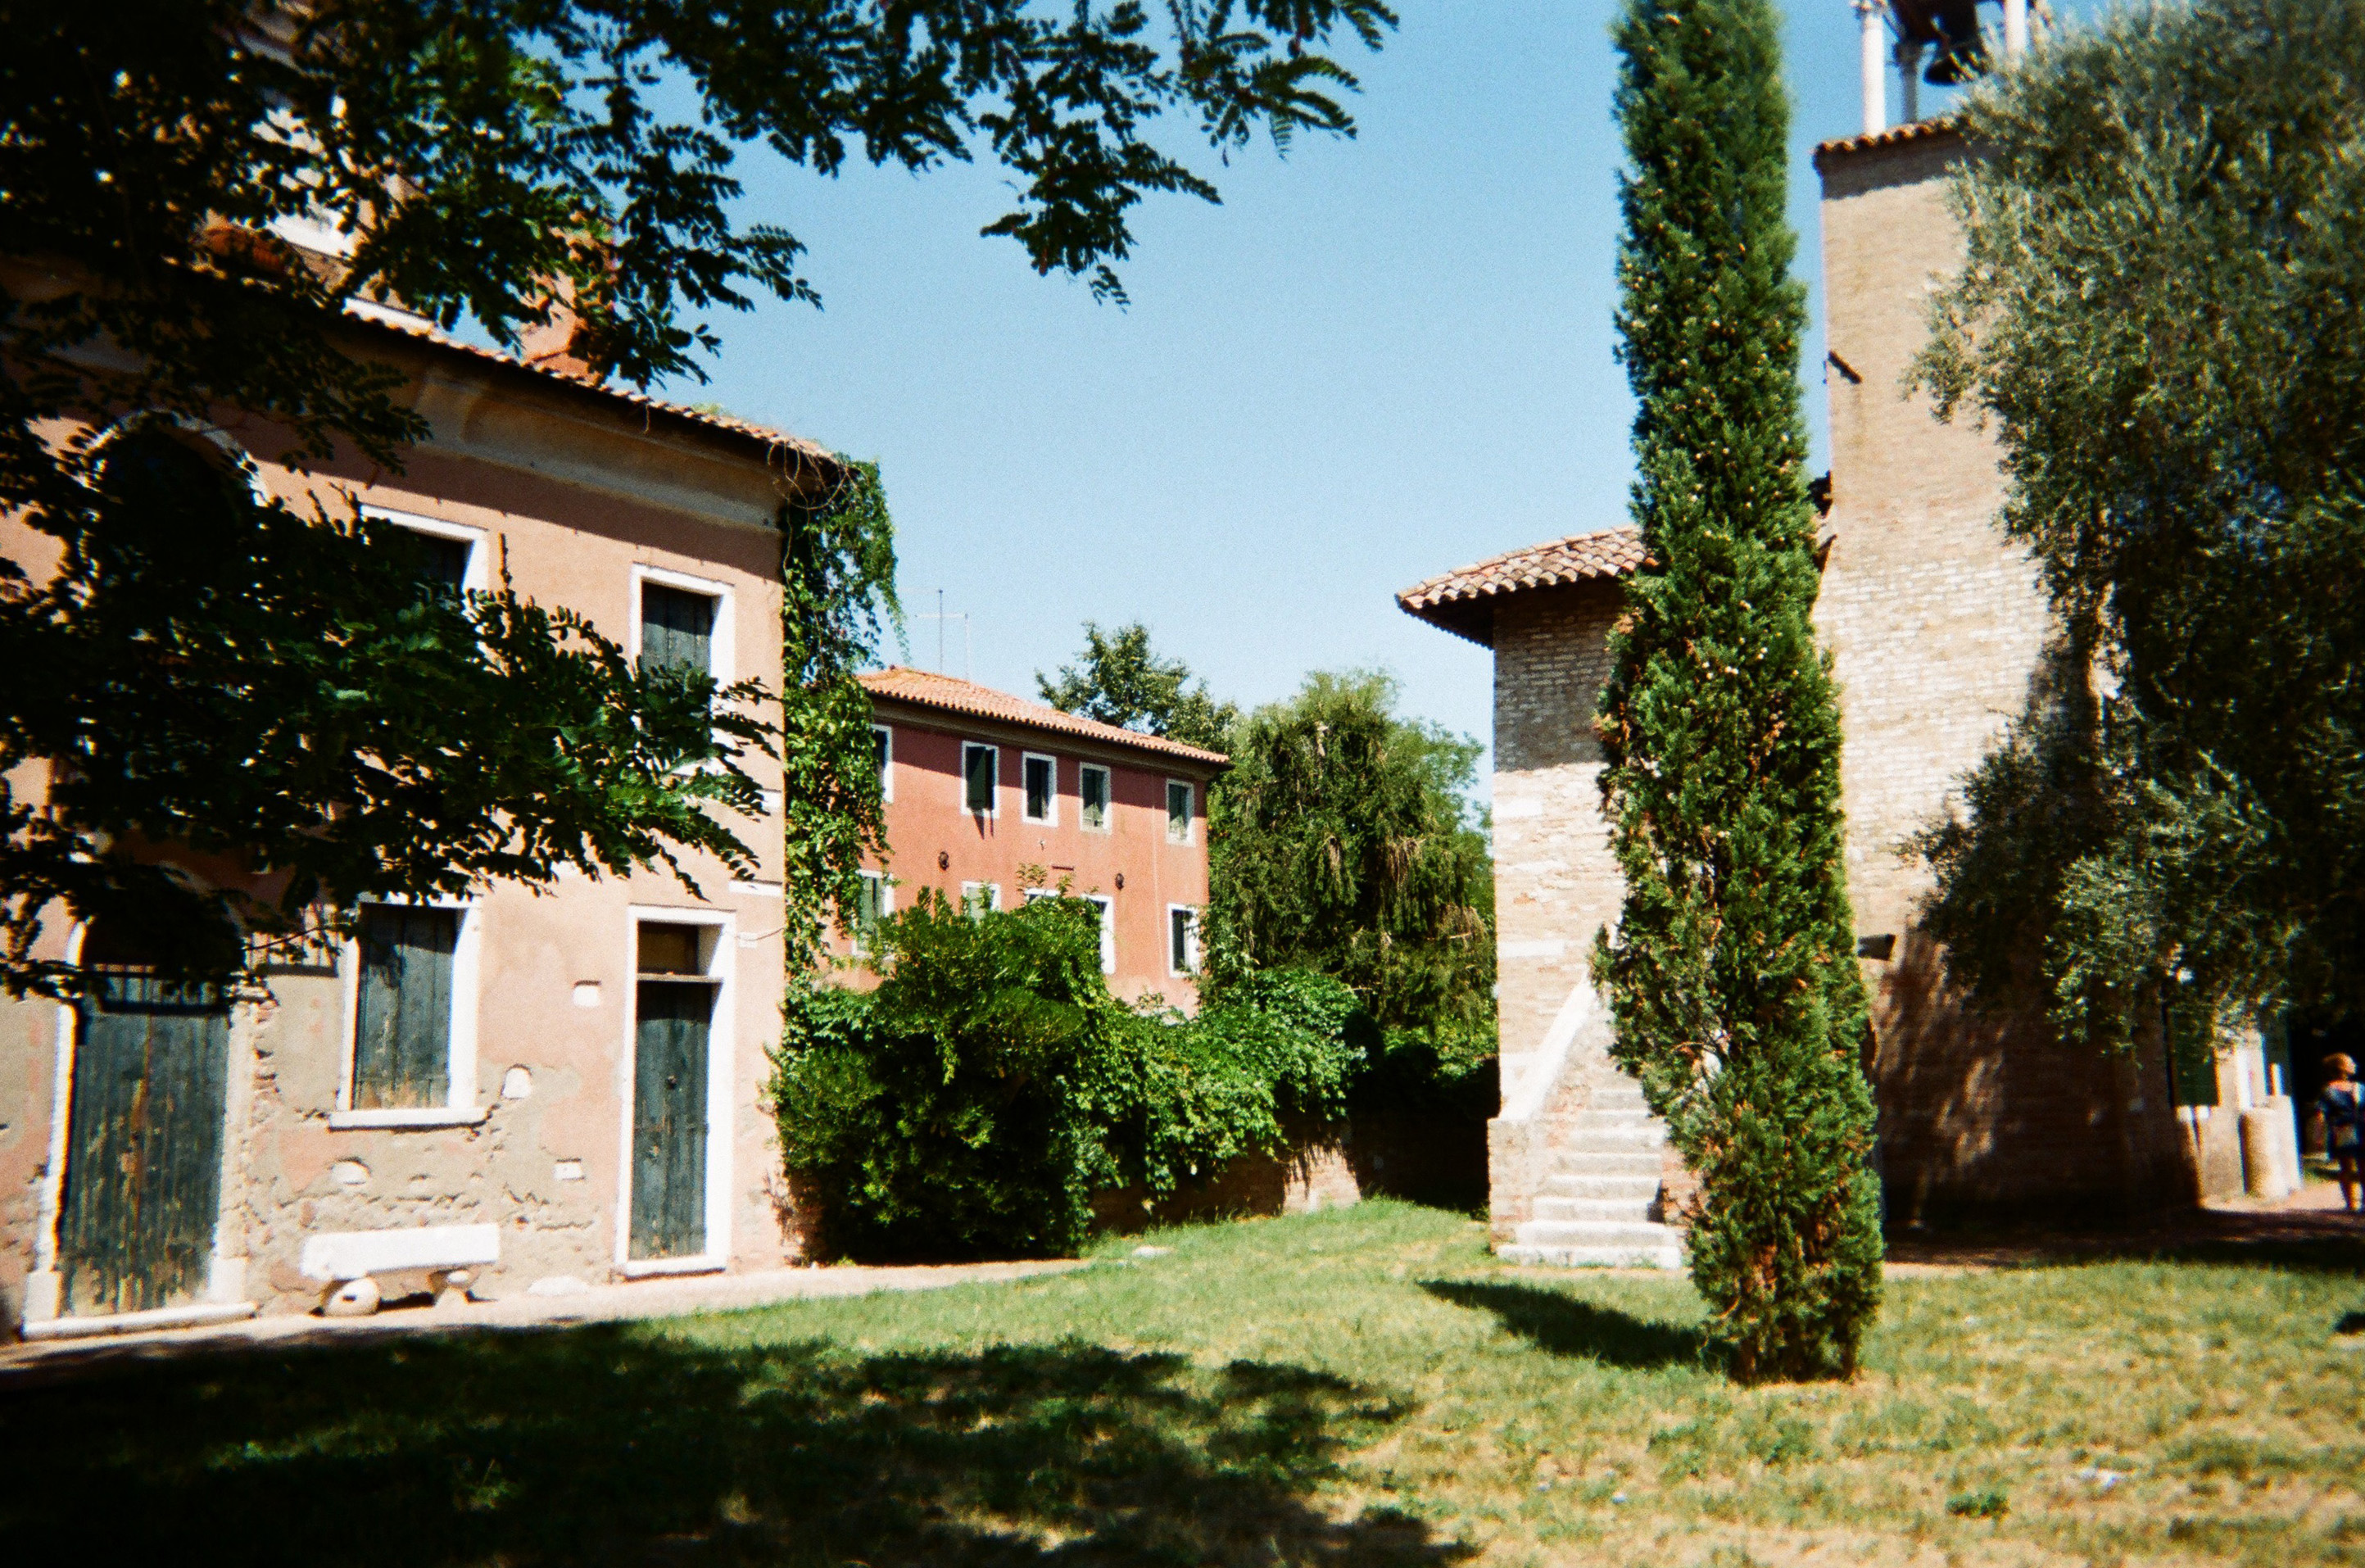 Torcello, Italy